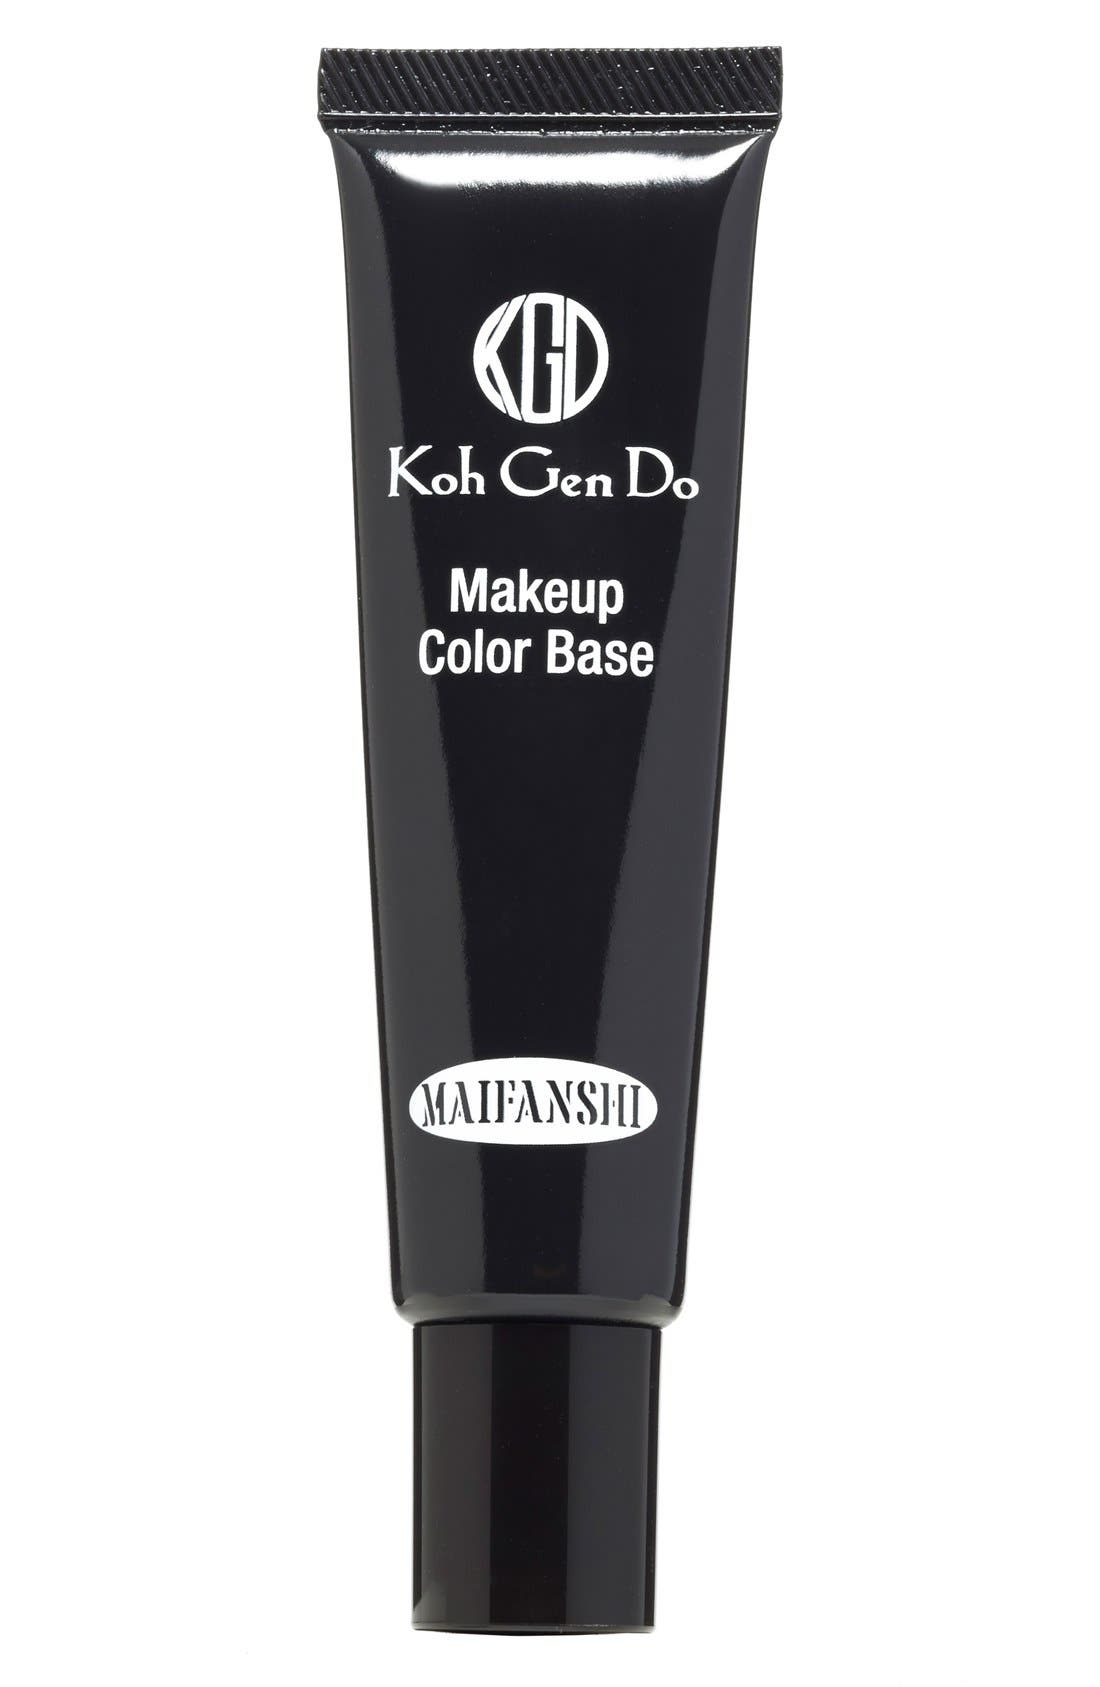 'Maifanshi - Pearl White' Makeup Color Base,                             Main thumbnail 2, color,